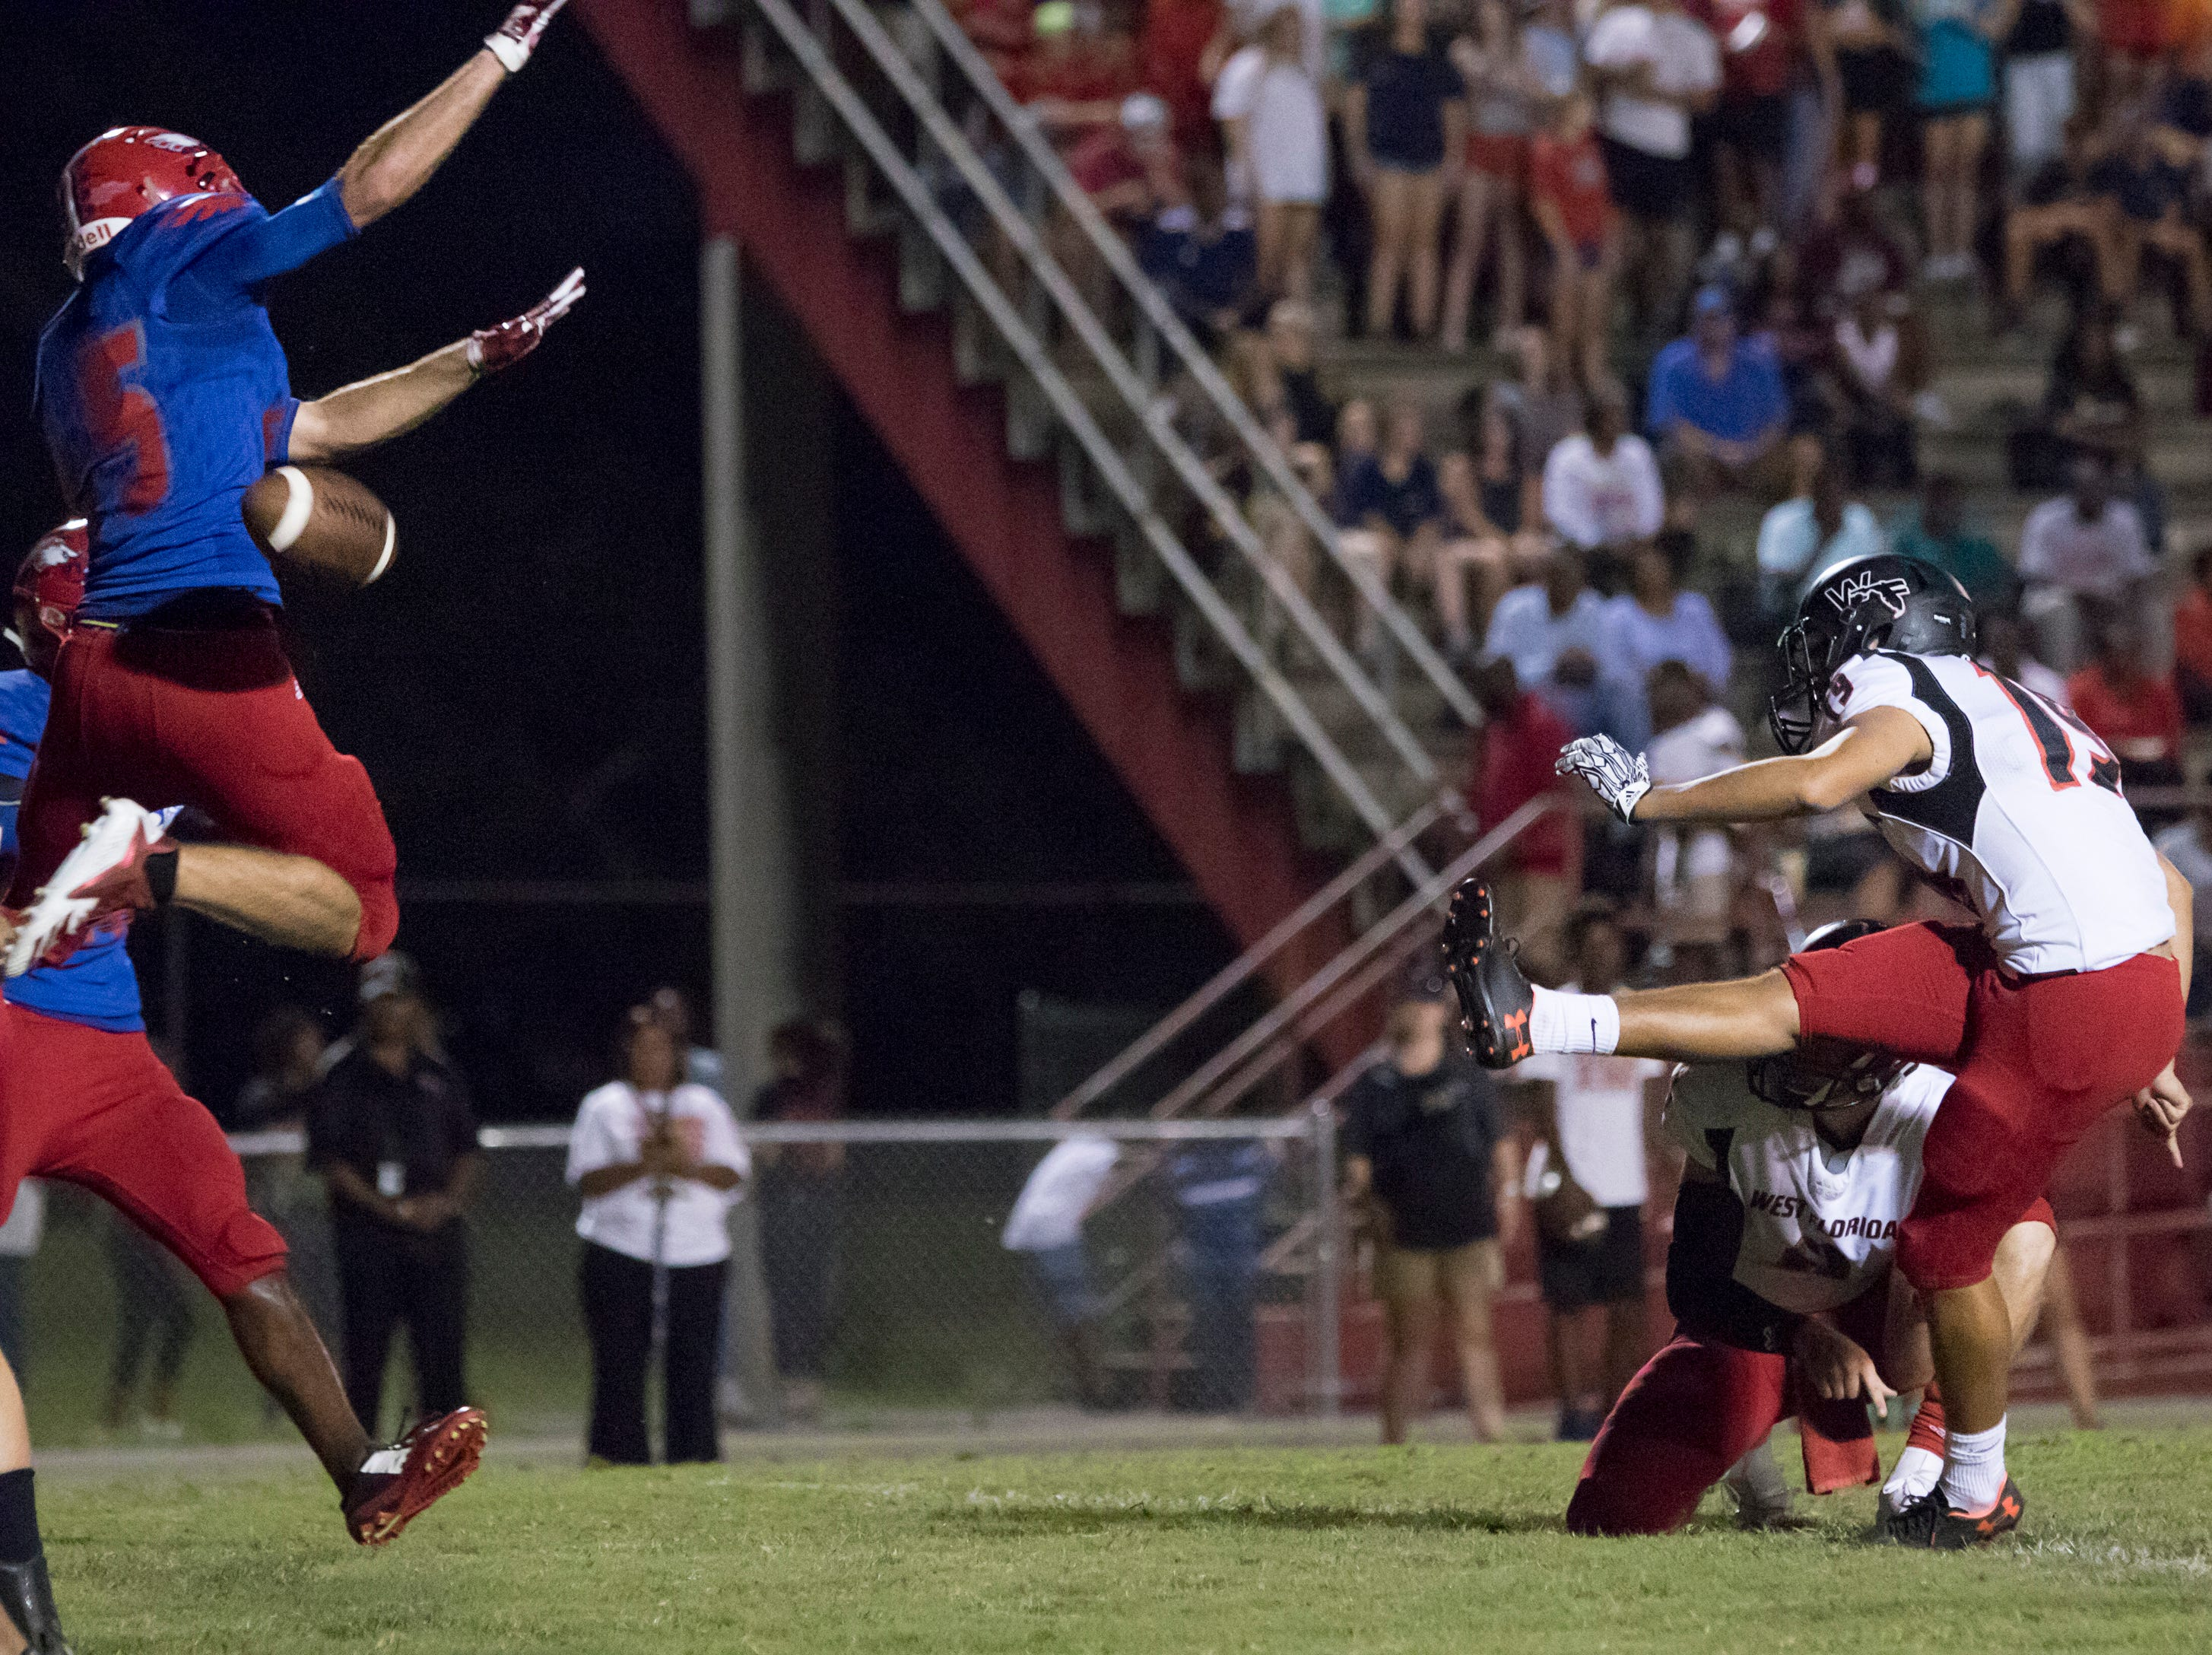 The Jaguars' extra point is blocked during the West Florida vs Pine Forest football game at Pine Forest High School in Pensacola on Friday, October 5, 2018.